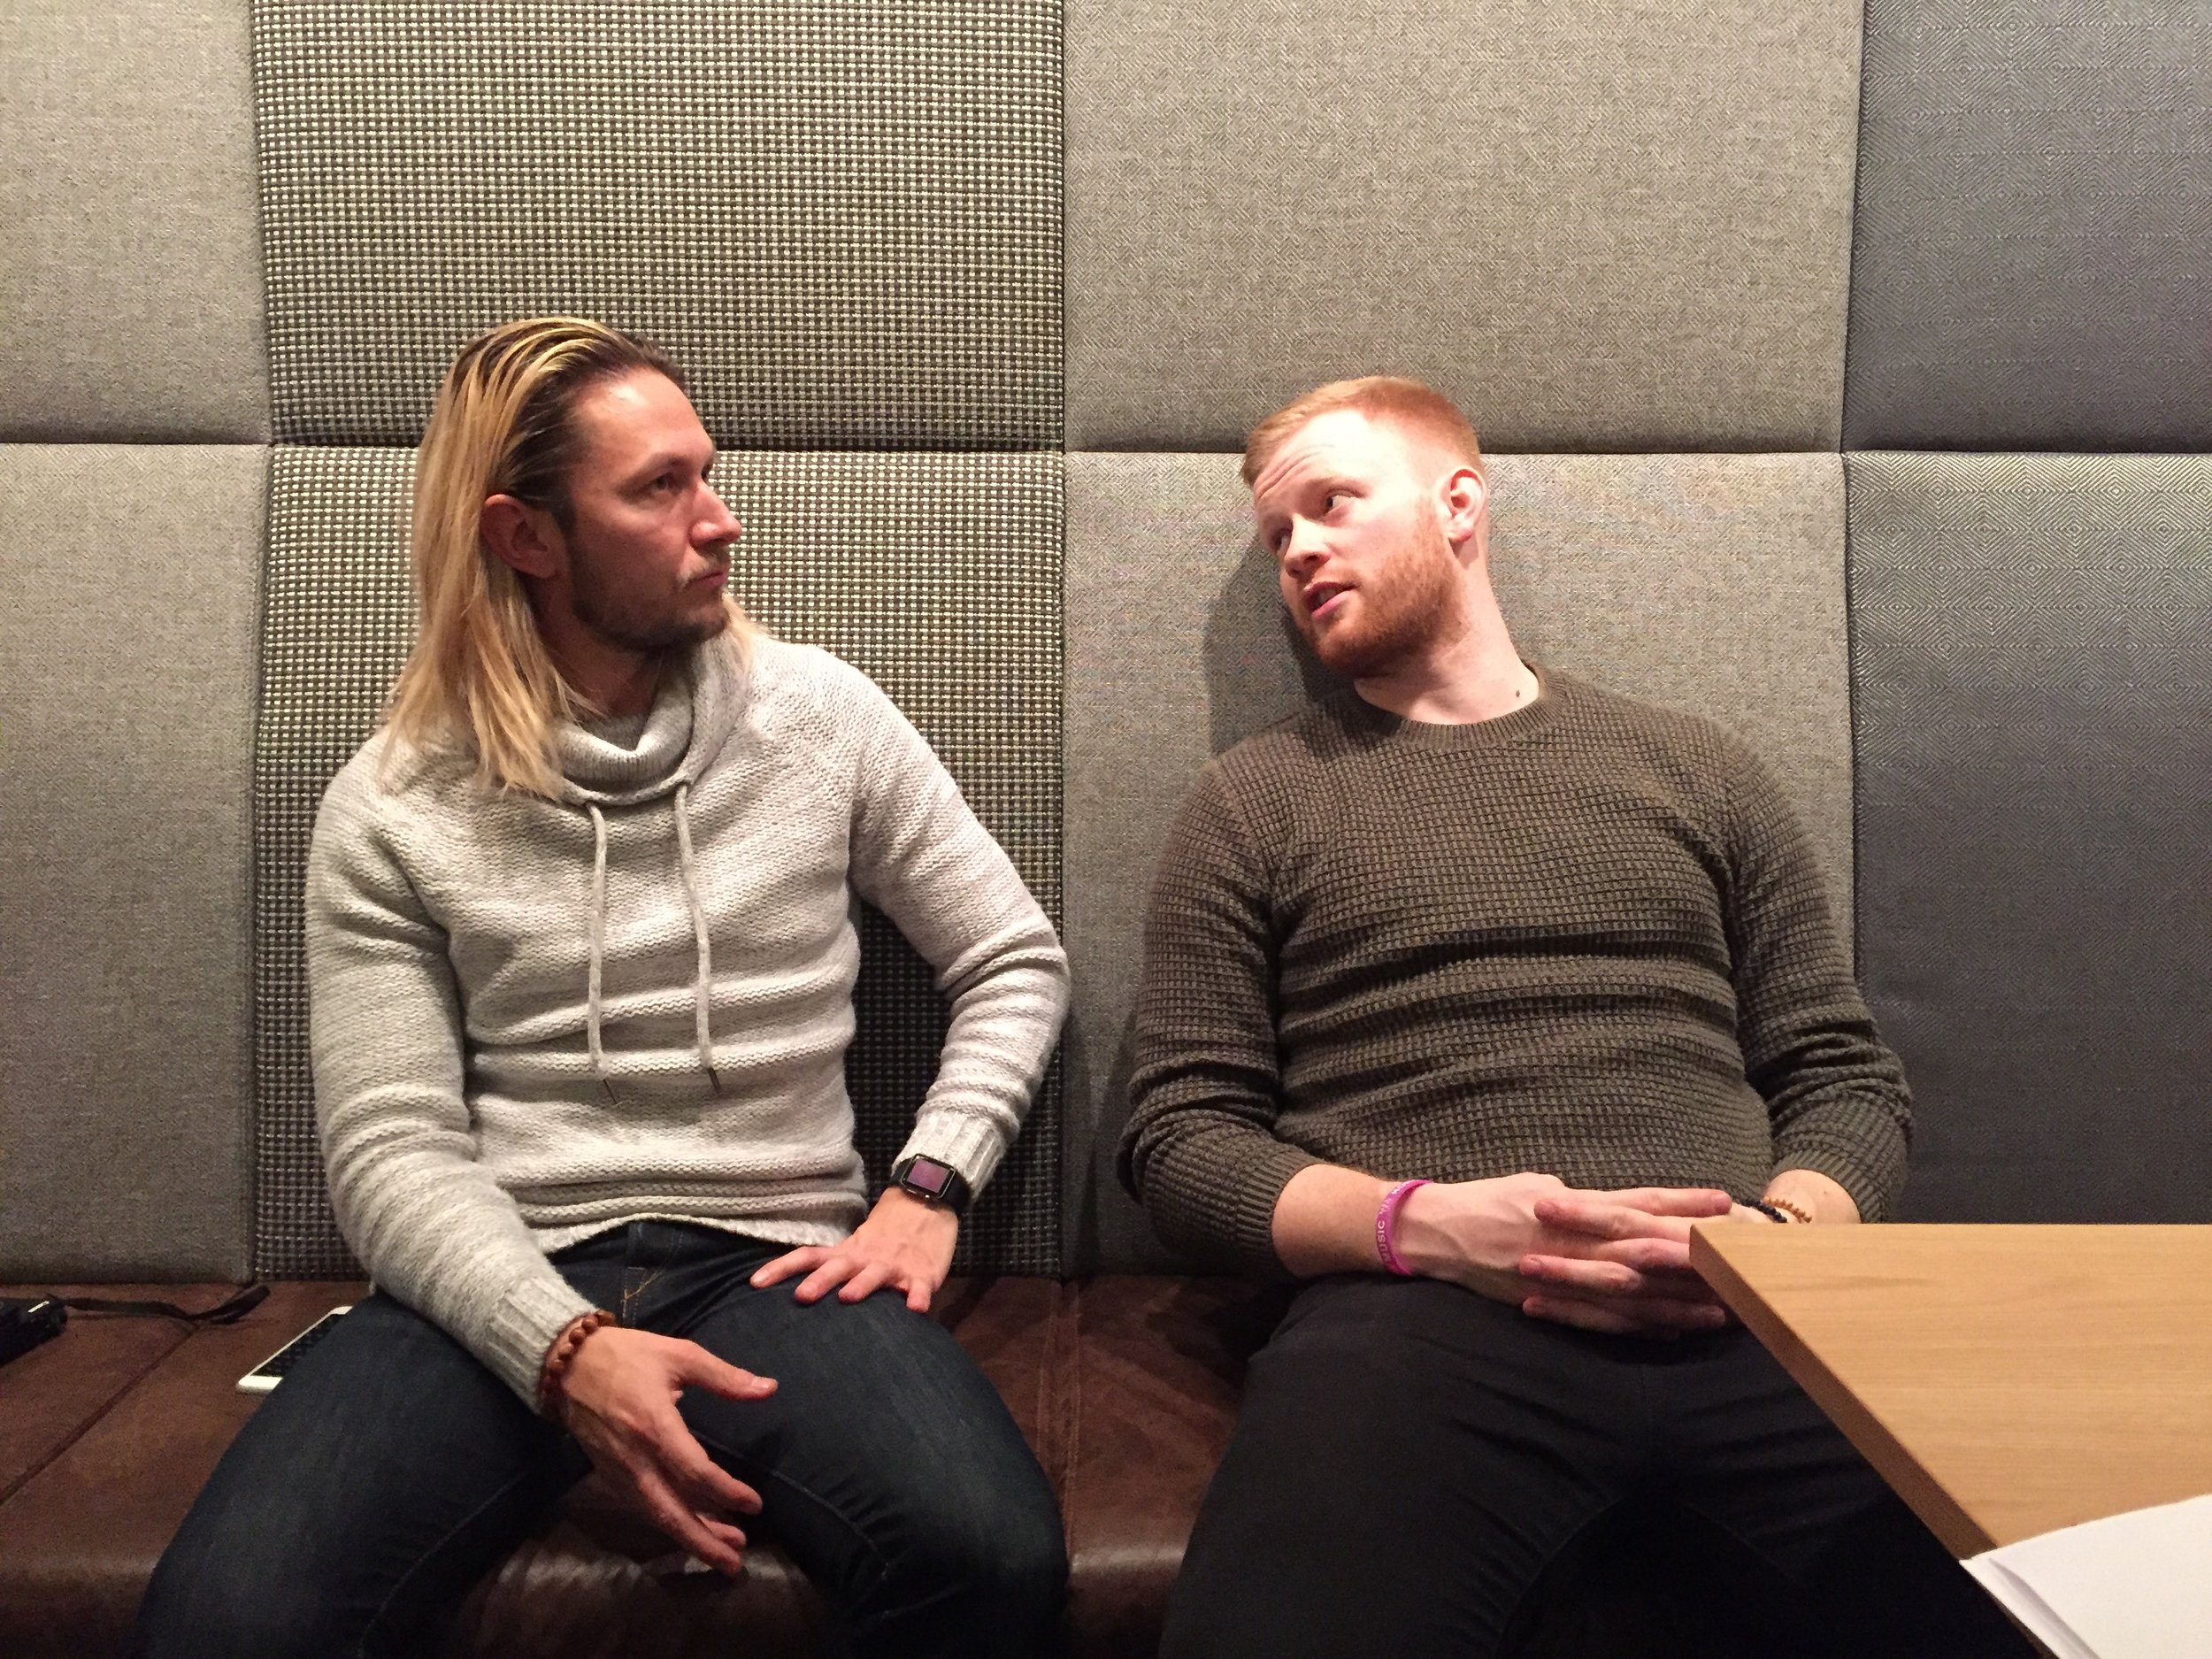 Pictured, two cool local Vikings mid-conversation. Ásgeir on the left an Hjalti on the right